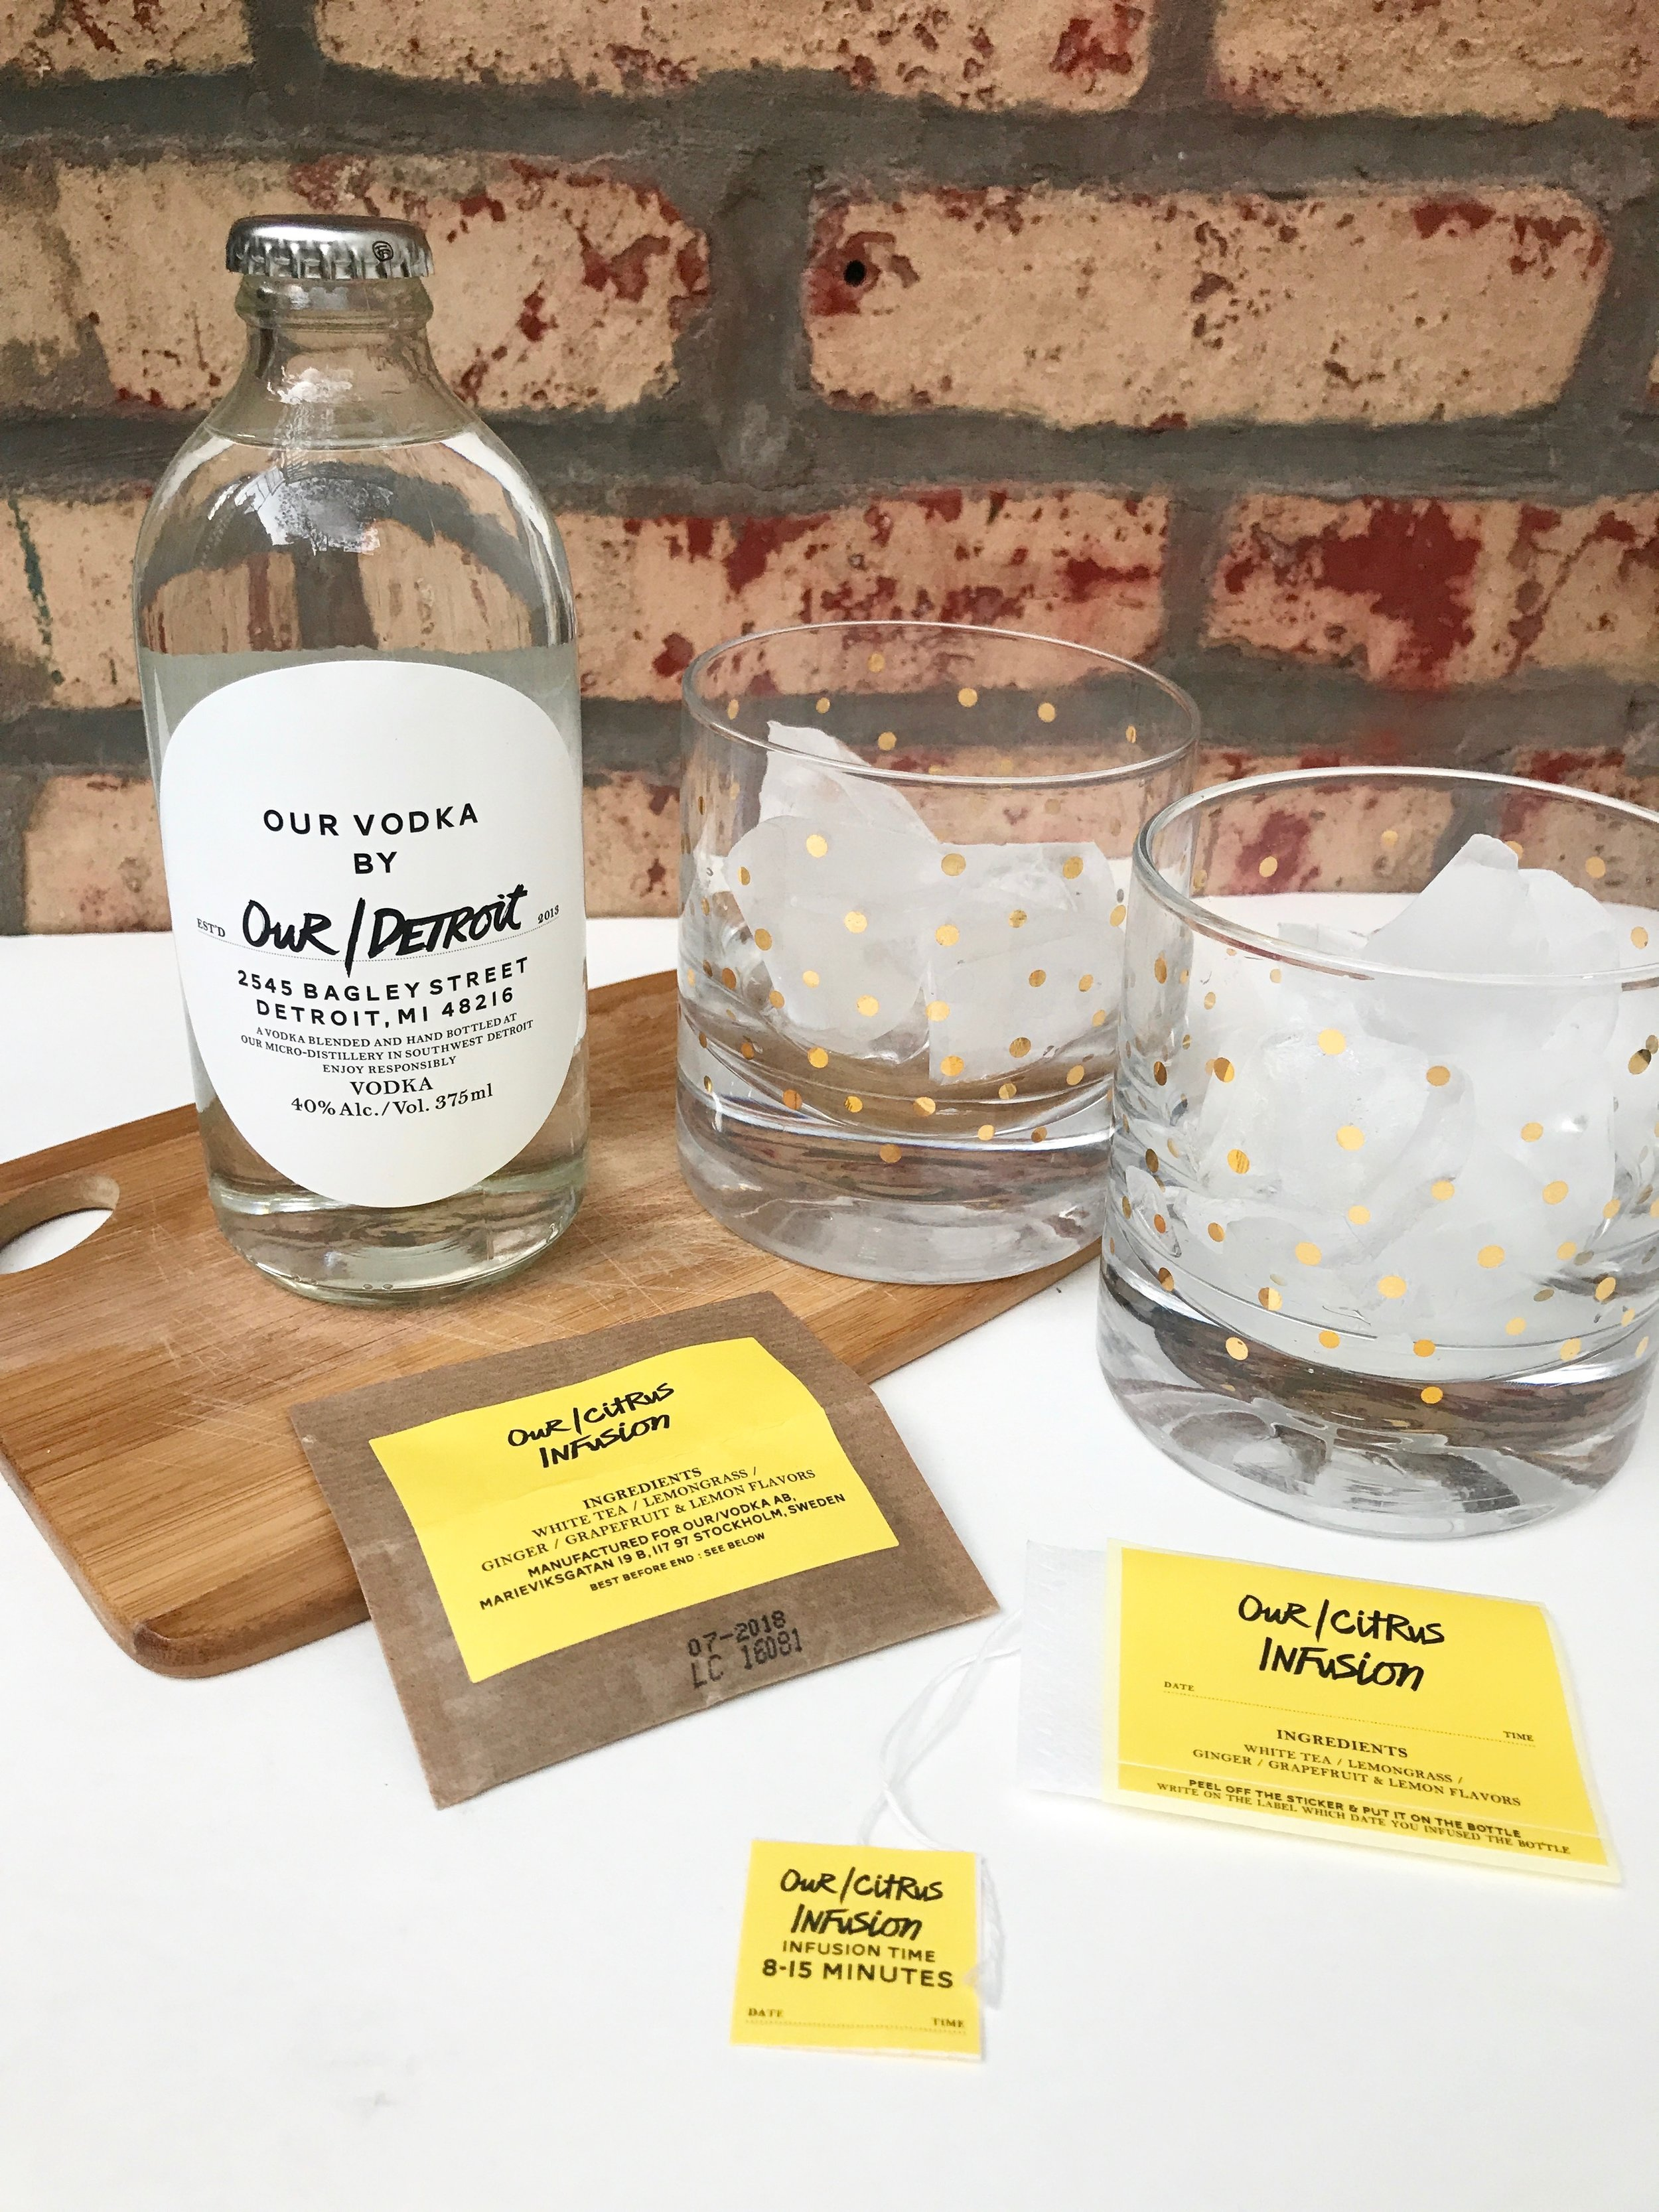 Anna Osgoodby Life + Design NYC Blog : 3 Tips for Summer Entertaining in the City with Our/Vodka